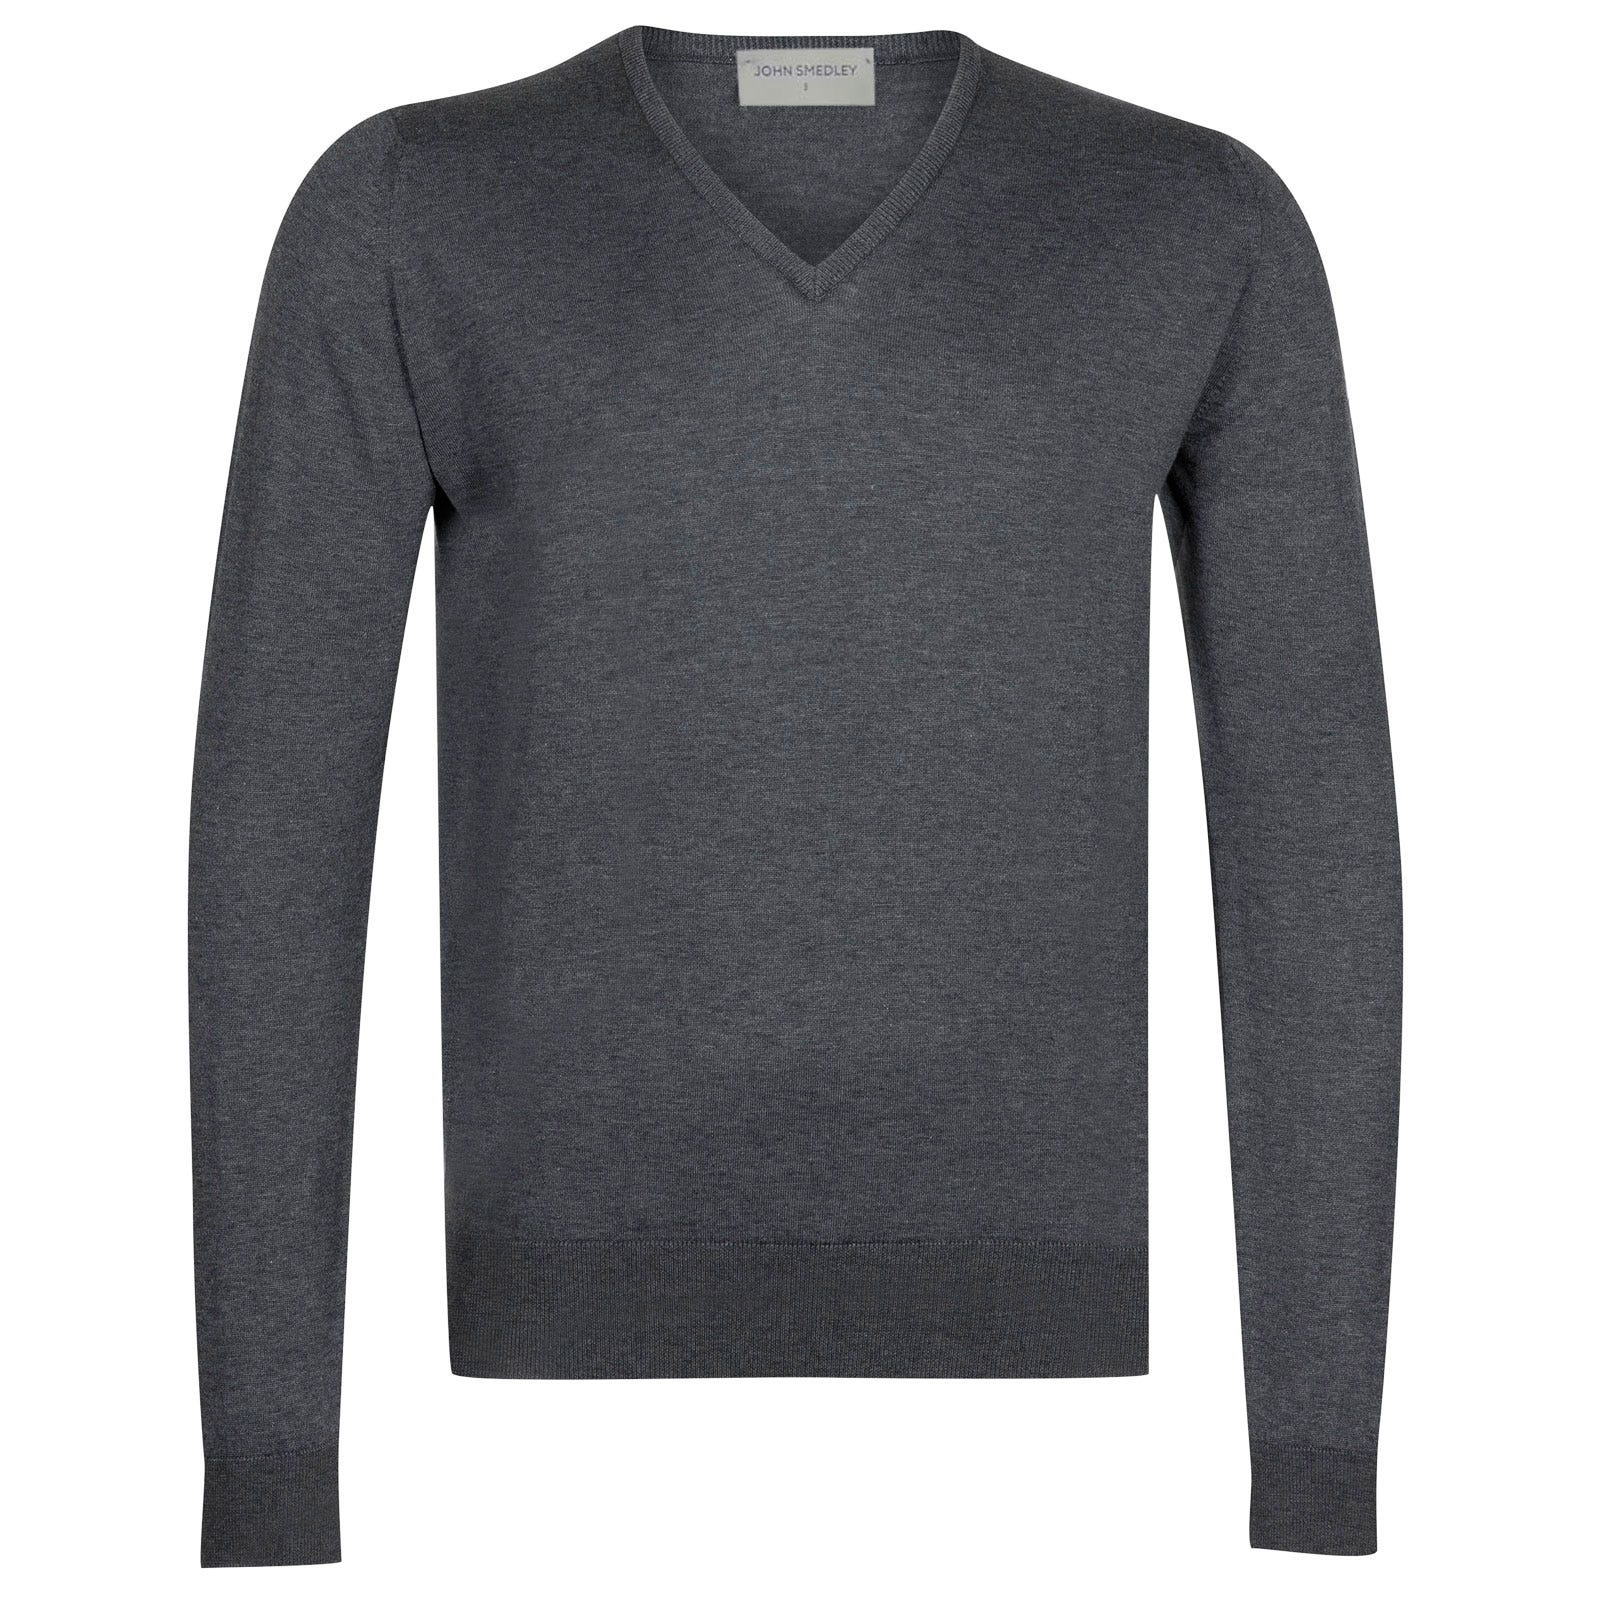 John Smedley Woburn Sea Island Cotton Pullover in Charcoal-L